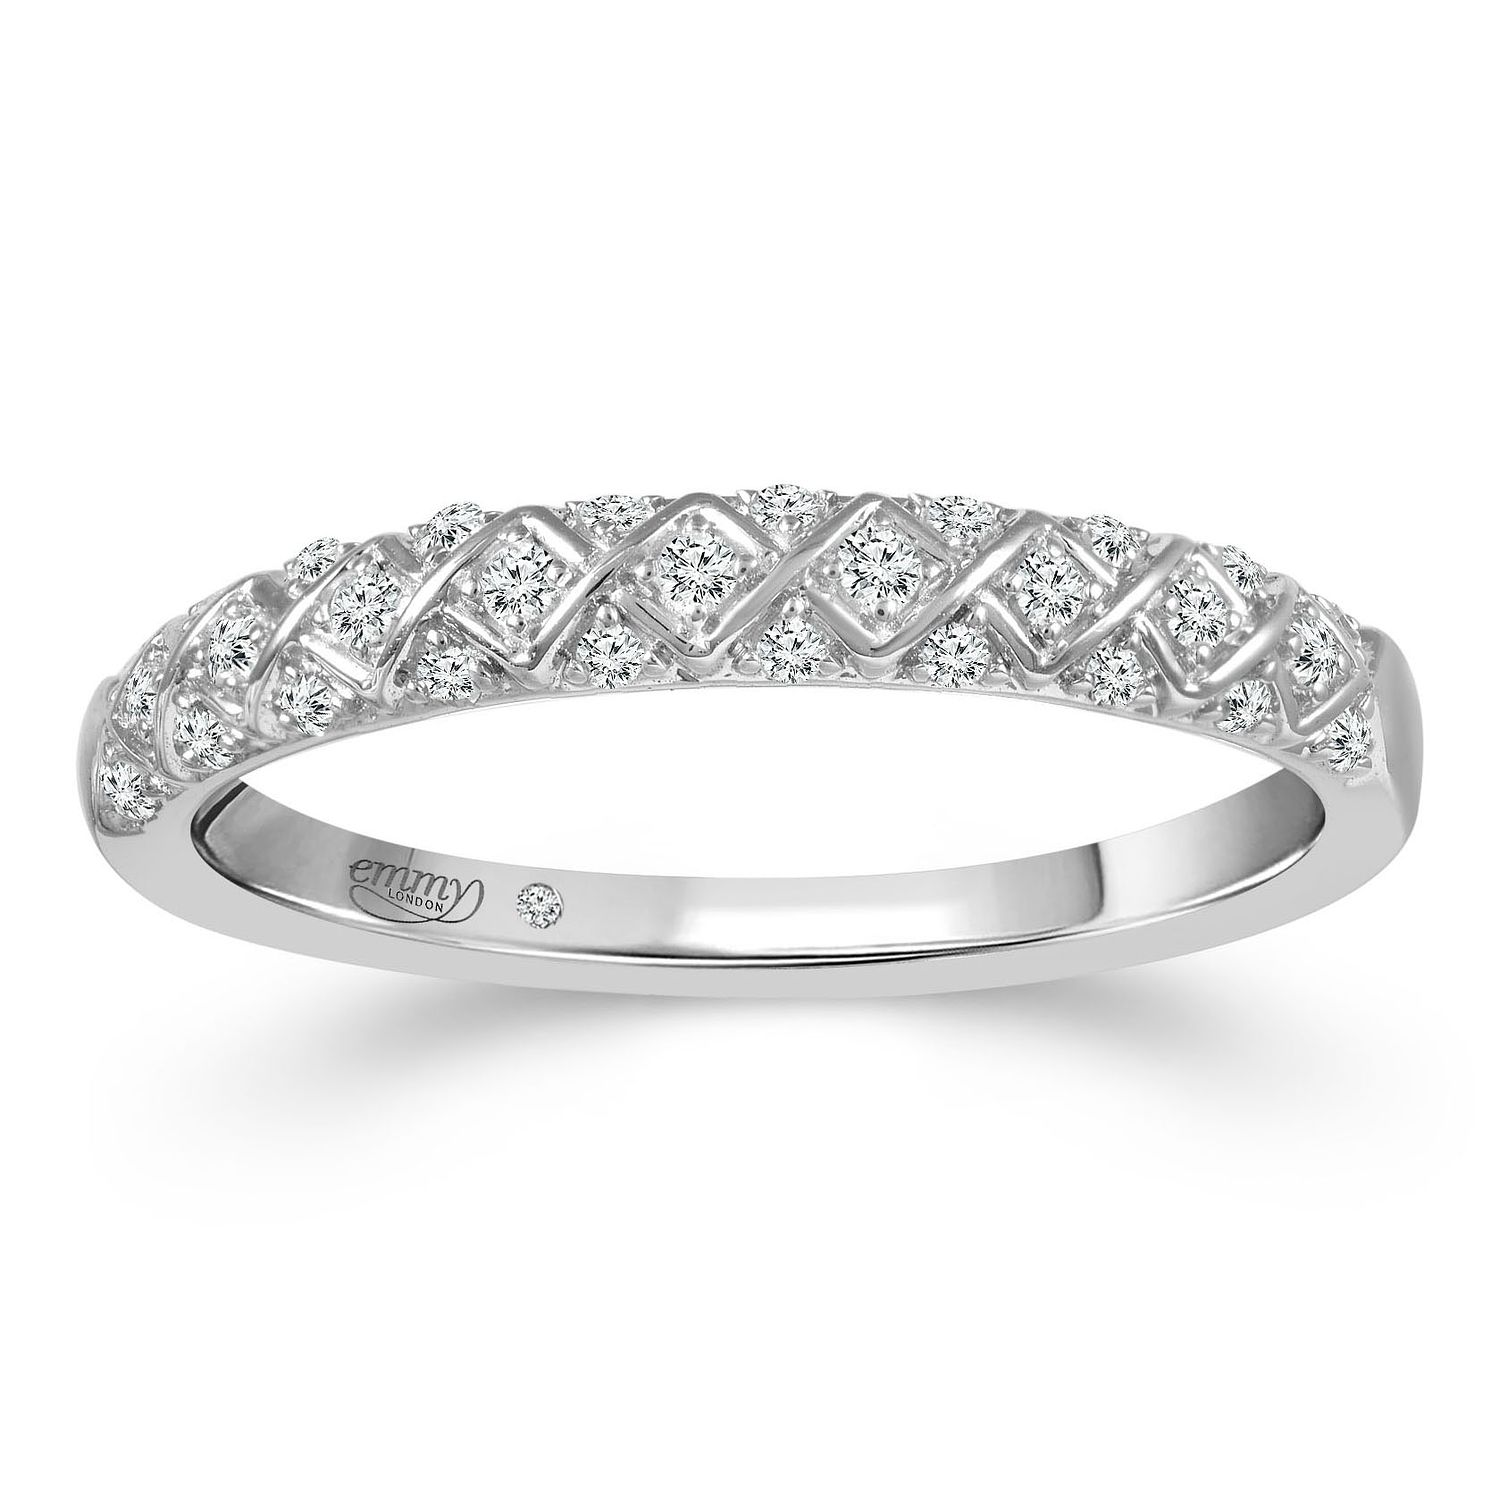 Emmy London 18ct White Gold 0.12ct Diamond Eternity Ring - Product number 2884119